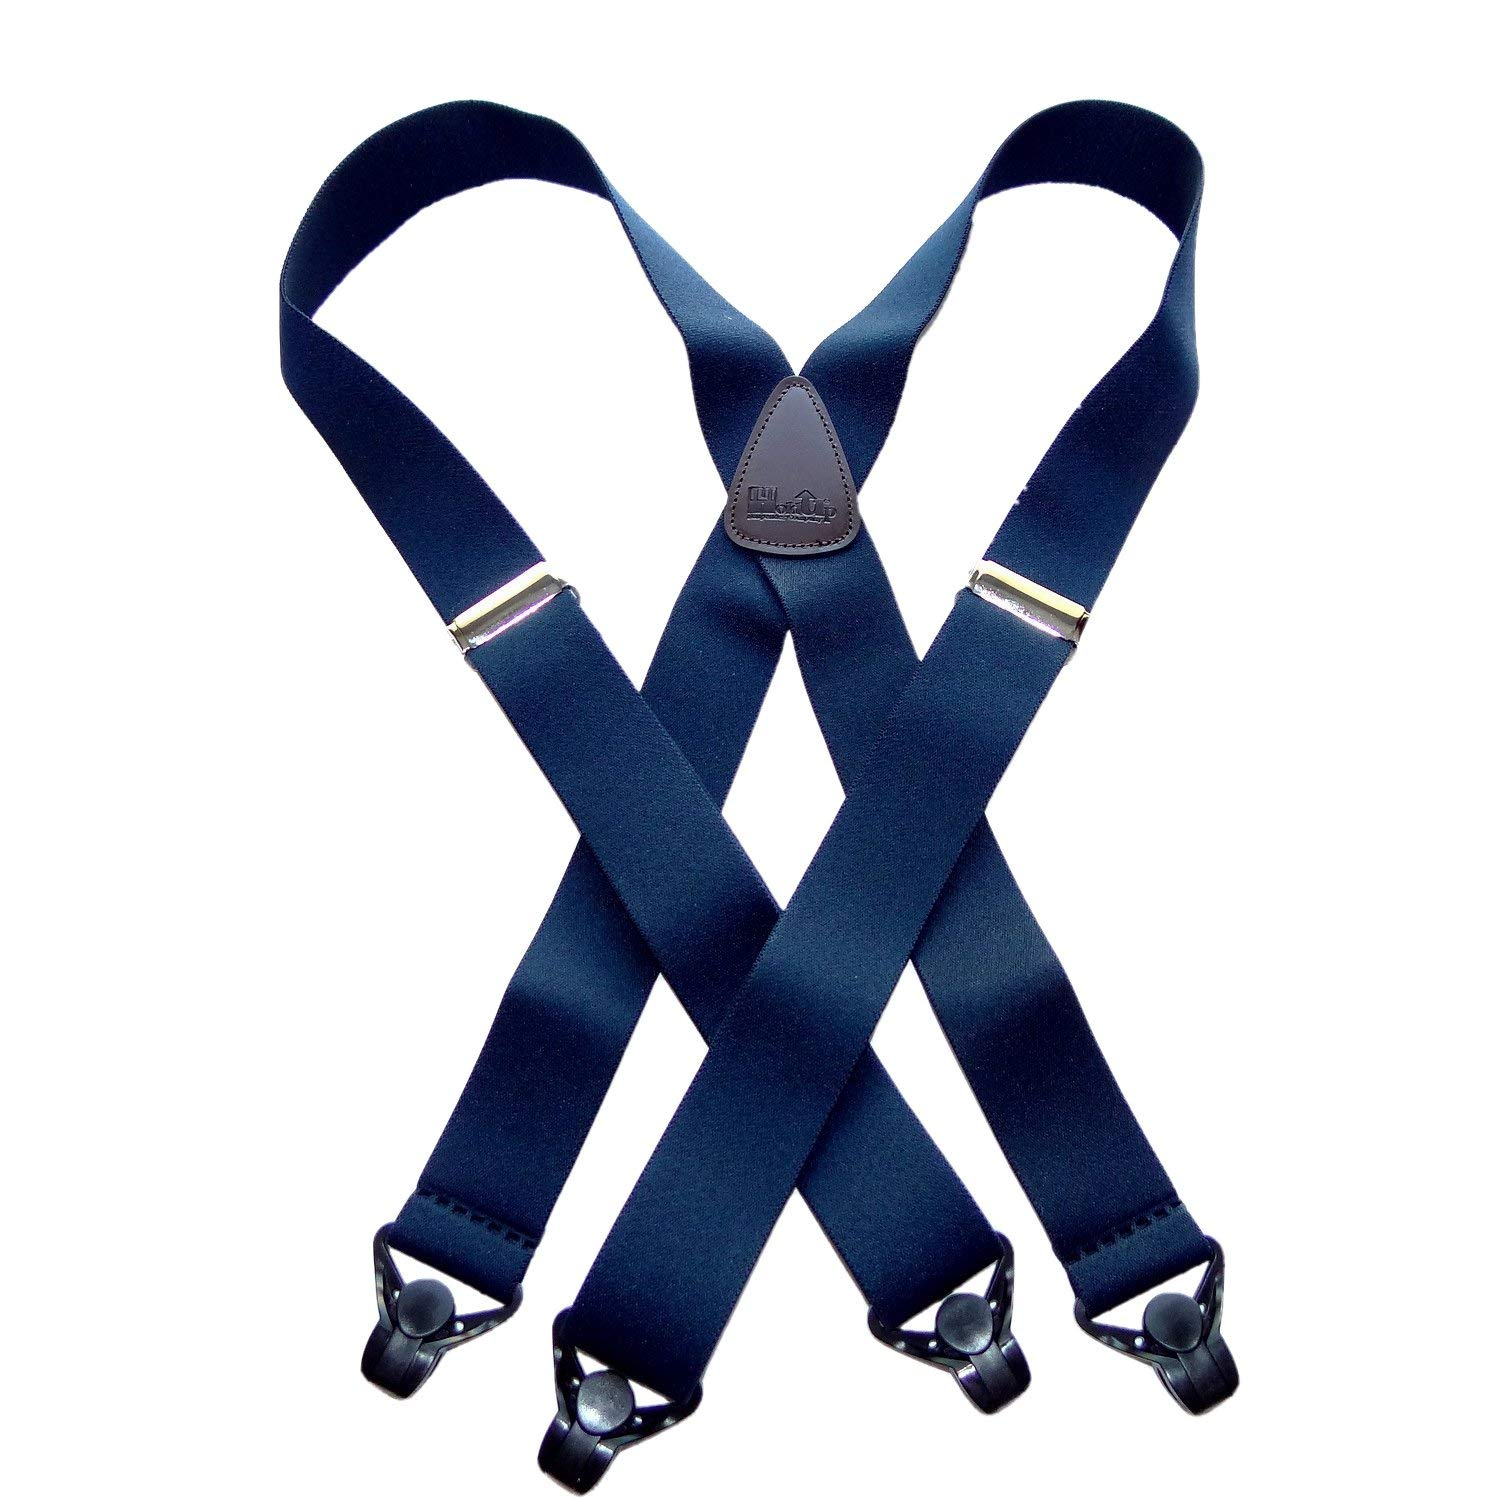 fa9a87b3e Holdup Suspenders in Navy Blue X-back Snow Ski Suspenders with Patented  Gripper Clasps in 1 1 2